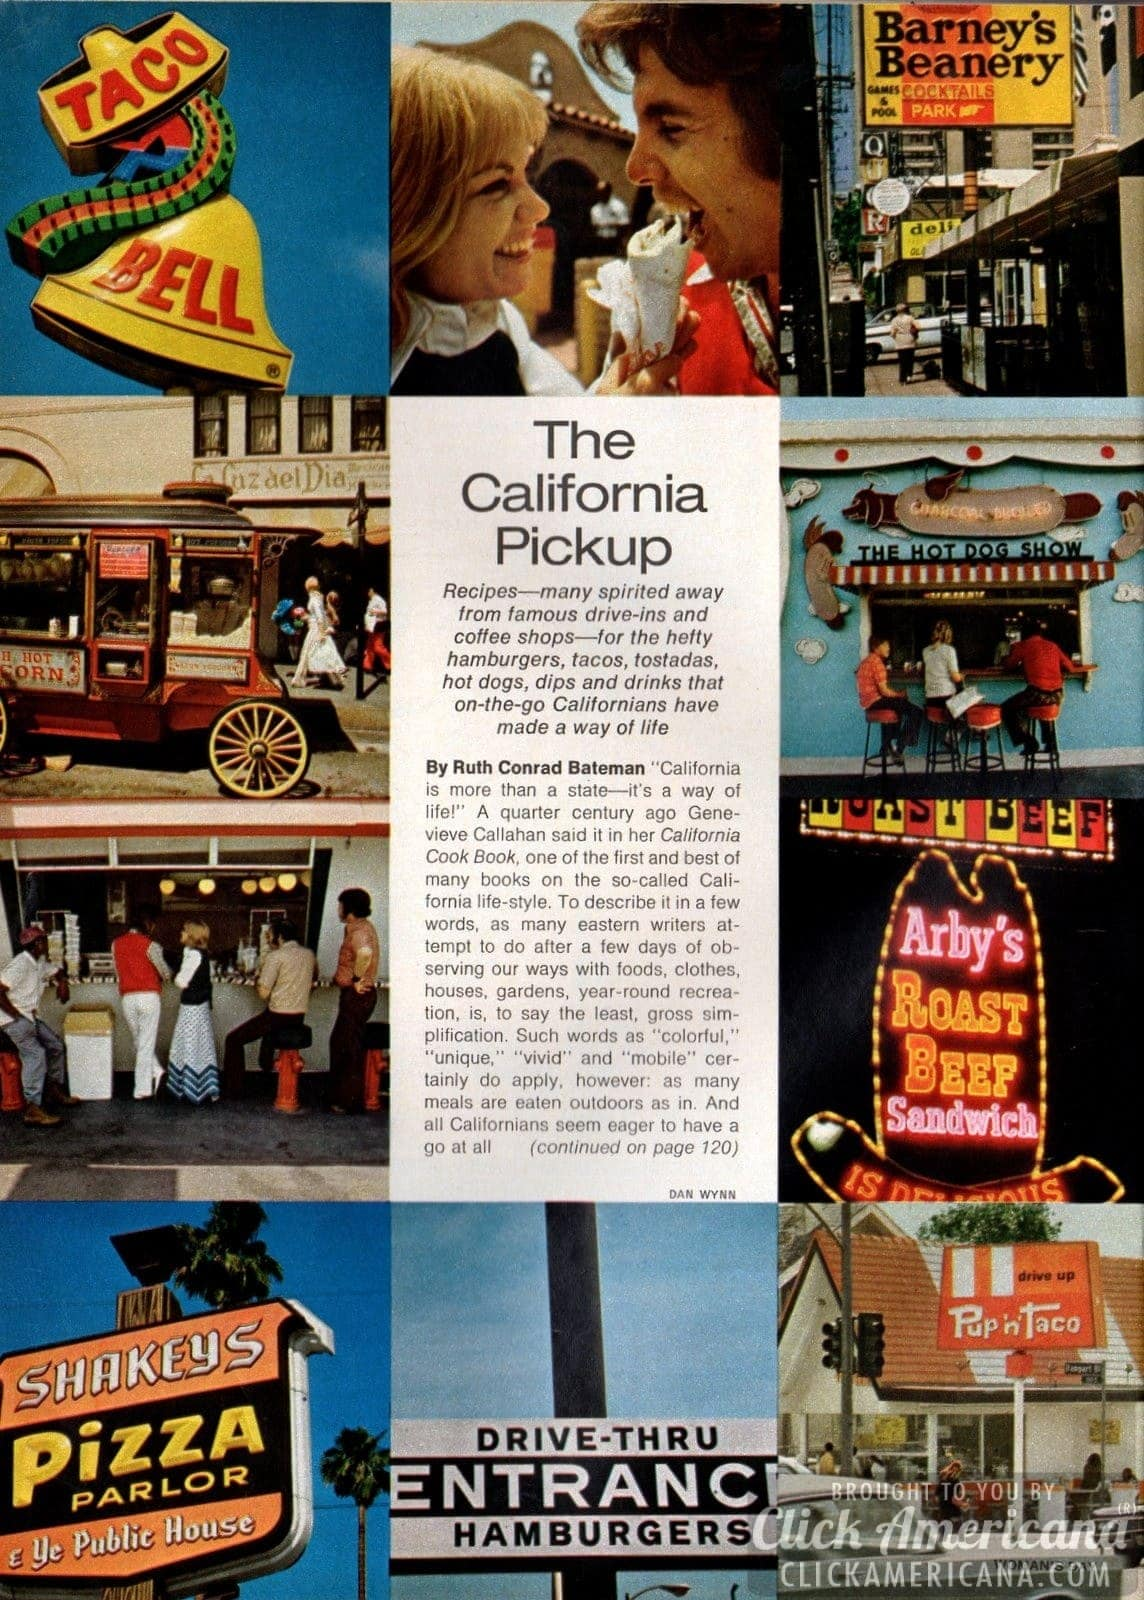 fast-food-restaurants-california-sept-1972